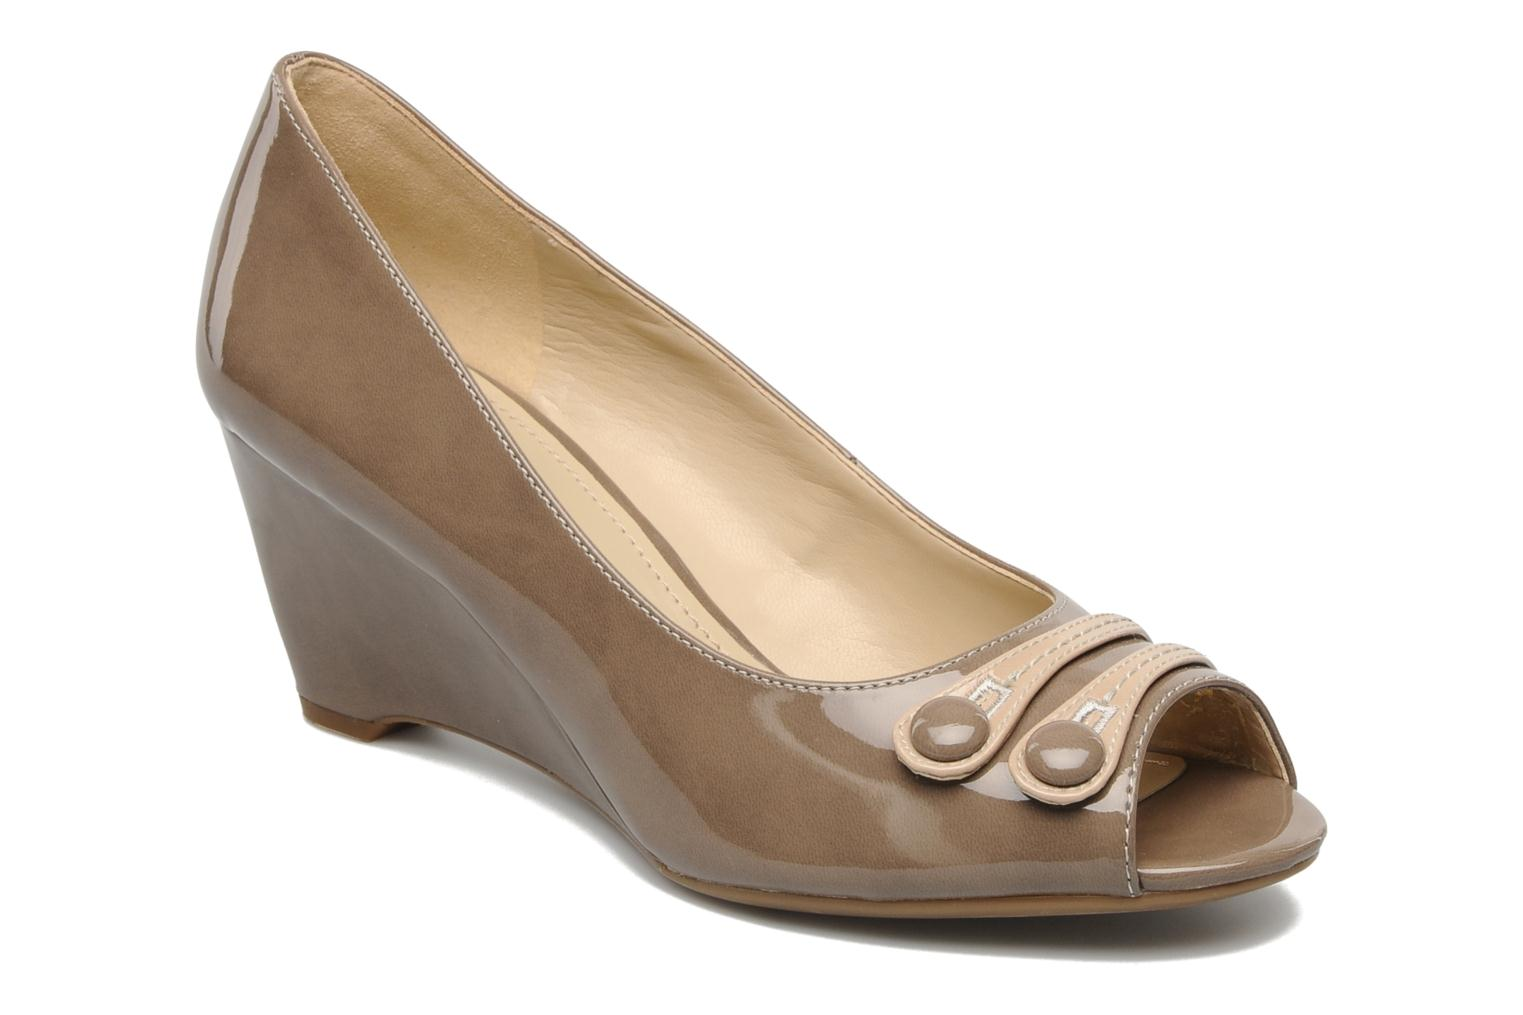 BRYLIE Truffle Taupe/Tender Taupe